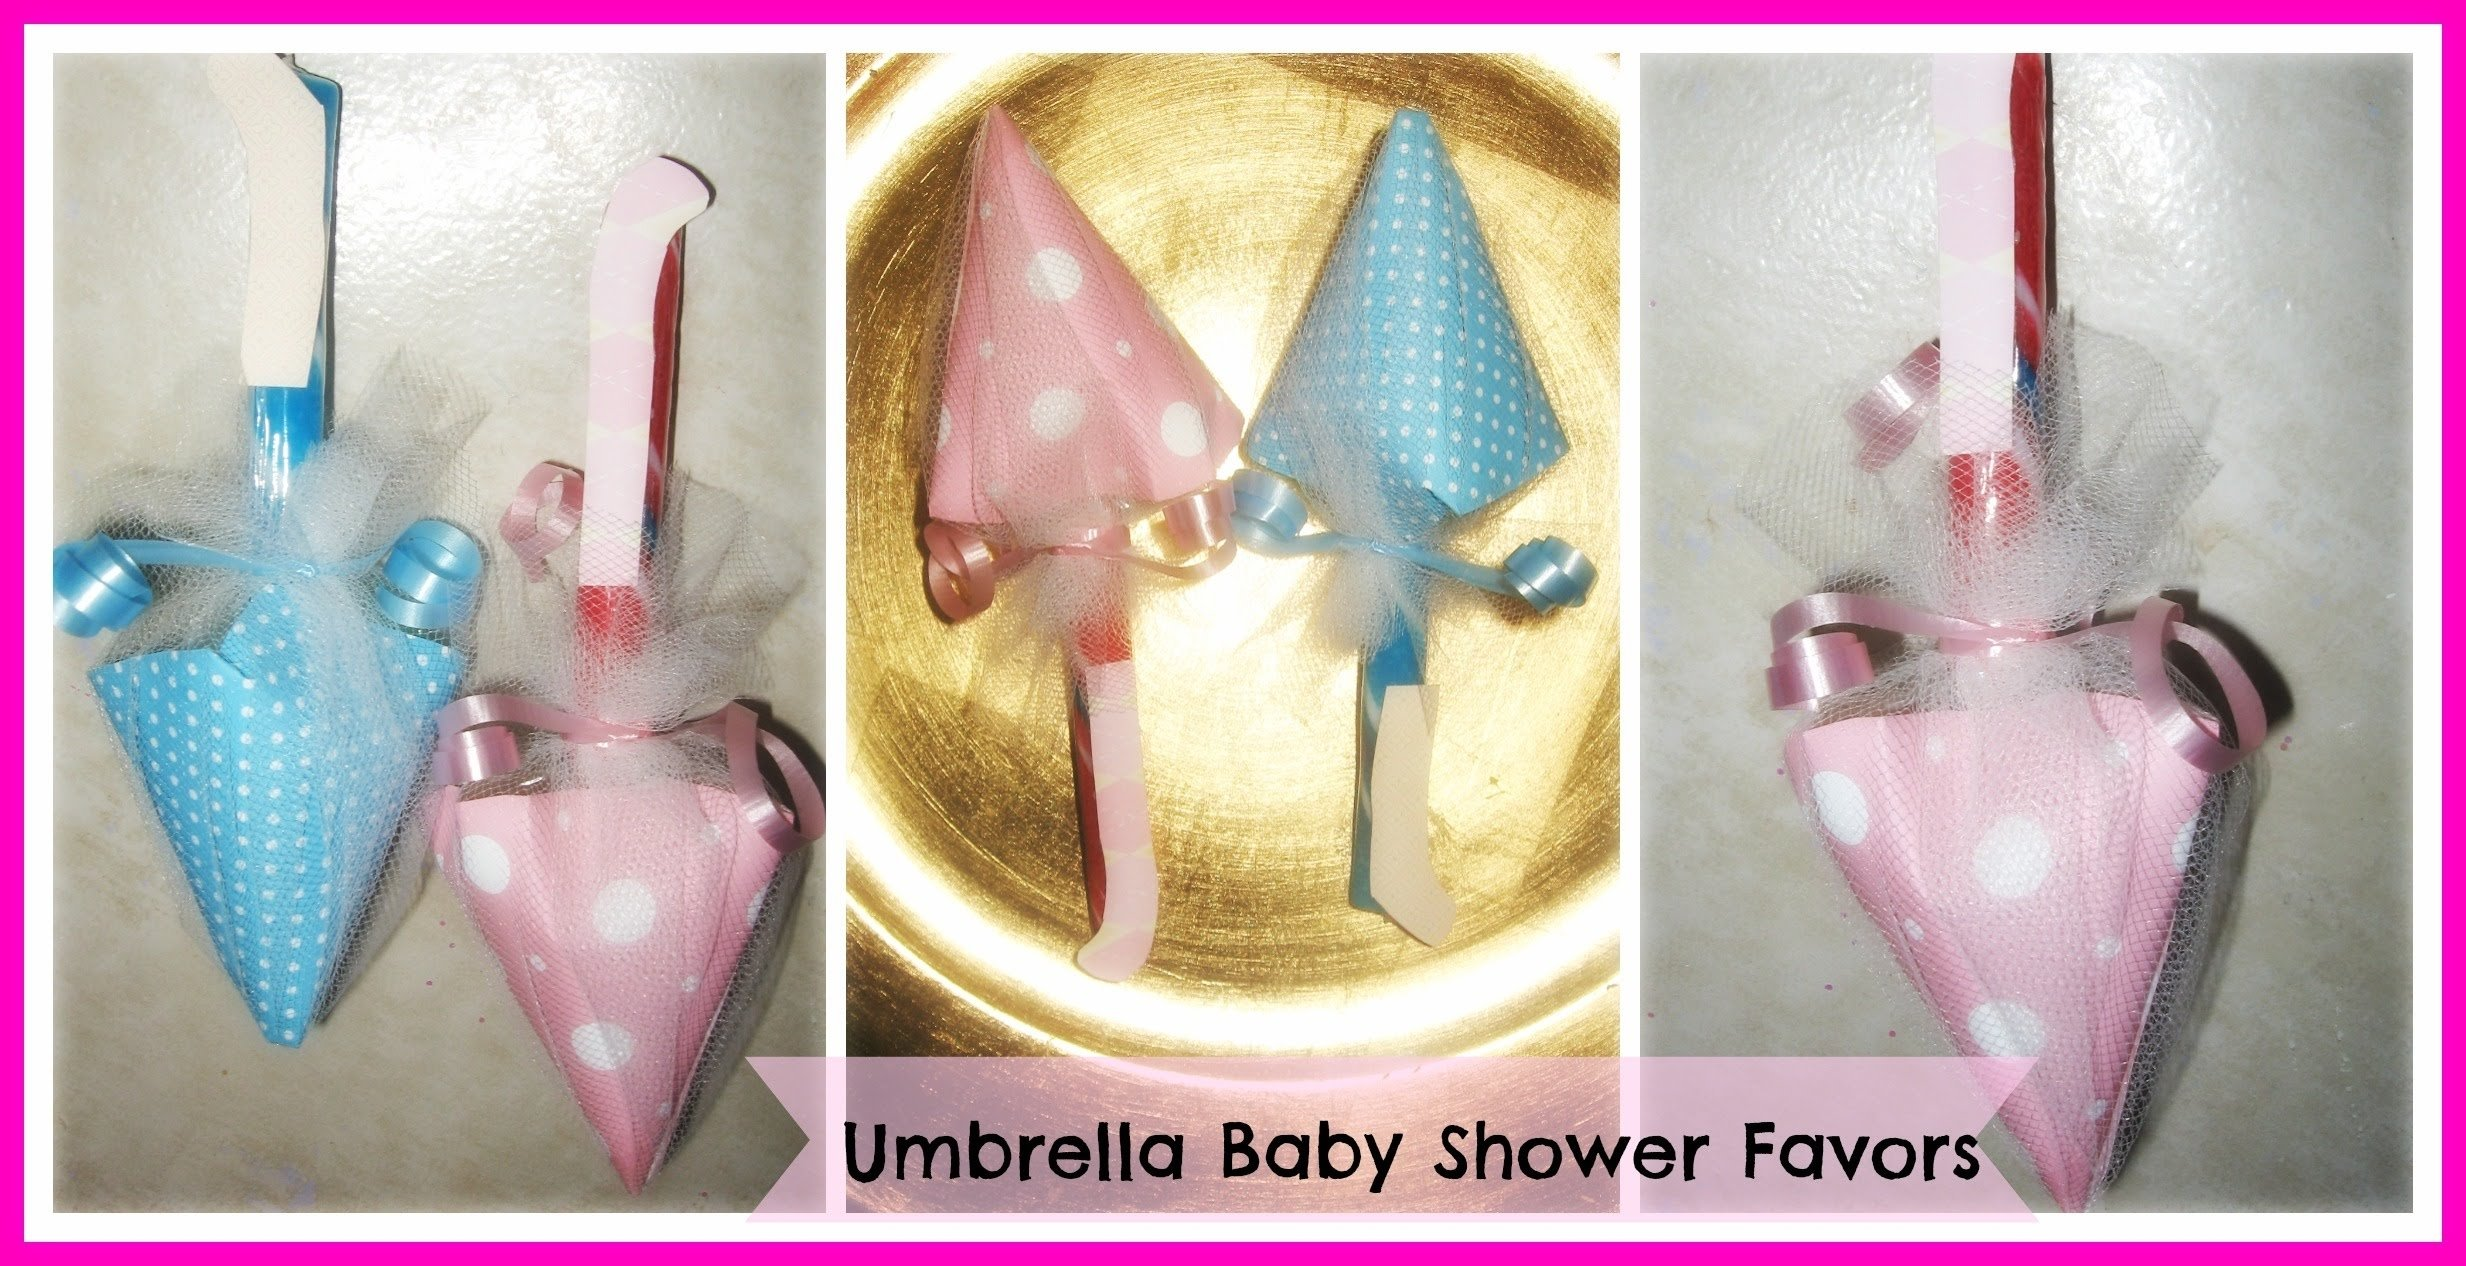 10 Lovable Baby Shower Favors Ideas To Make how to make umbrella baby shower favors tutorial diy candy umbrella 2020